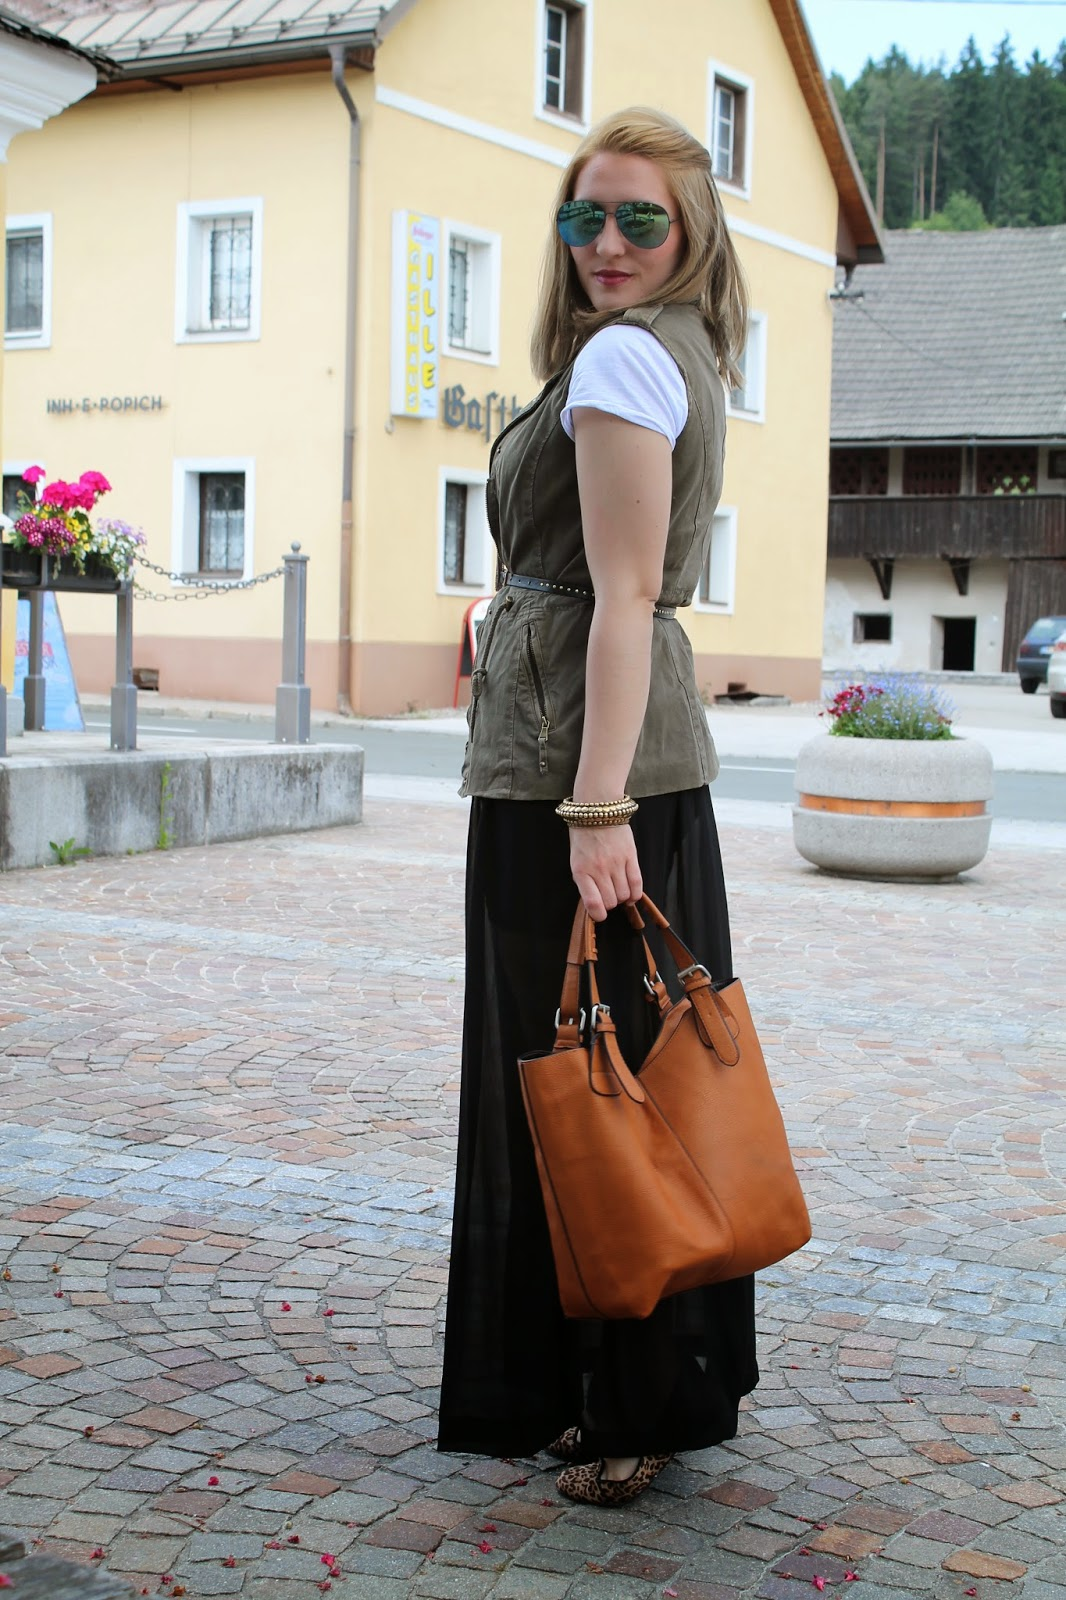 Fashionblogger Austria / Österreich / Deutsch / German / Kärnten / Carinthia / Klagenfurt / Köttmannsdorf / Spring Look / Classy / Edgy / Summer / Summer Style 2014 / Summer Look / Fashionista Look /  Maxi Skirt / Maxi Rock / How to Style / takko / H&M / Leo / Loafers / Zalando /